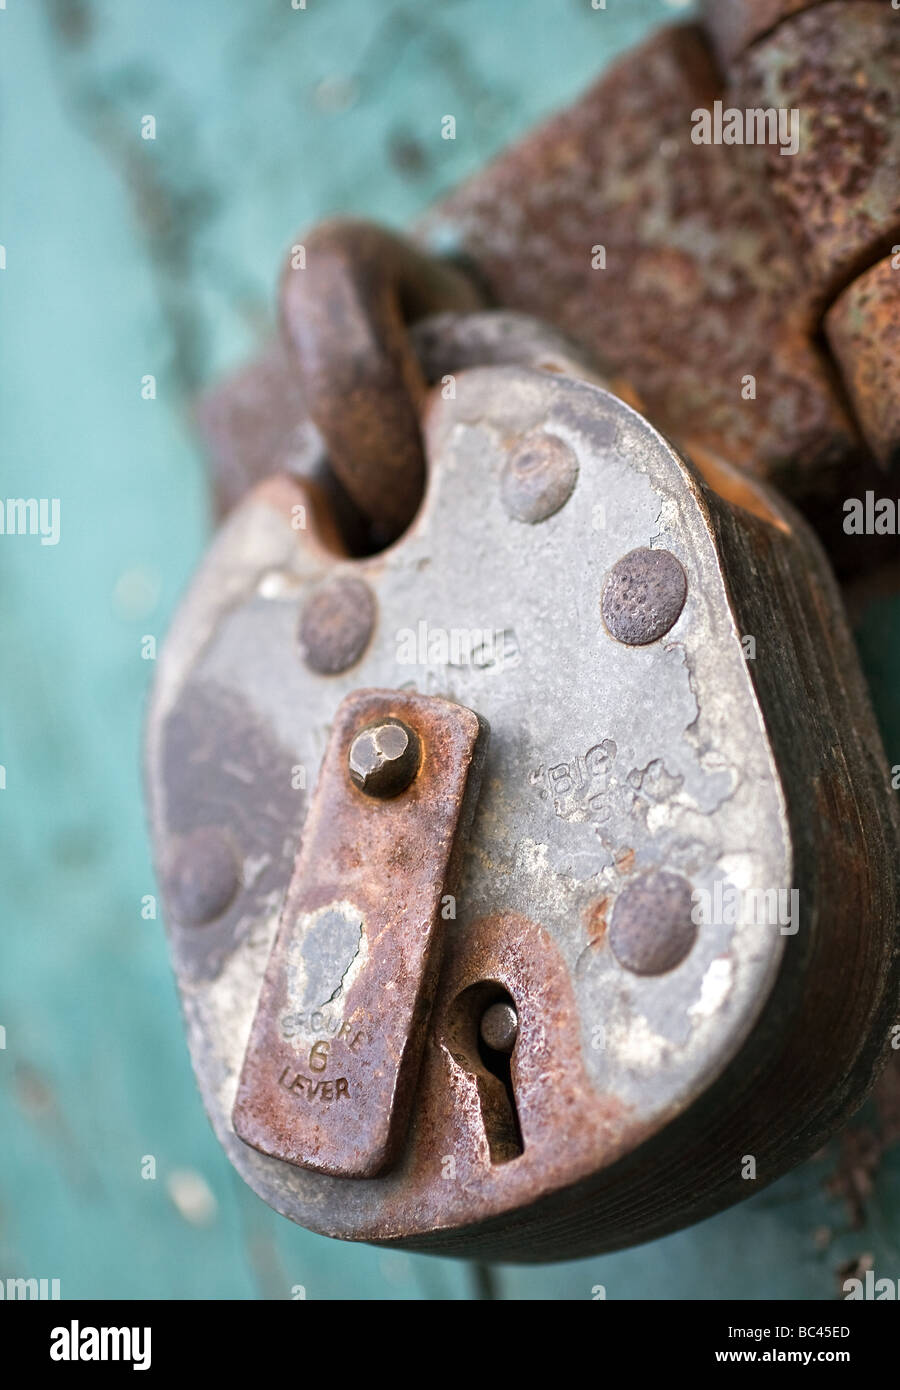 Close shot of a pad lock on a terquoice background. - Stock Image